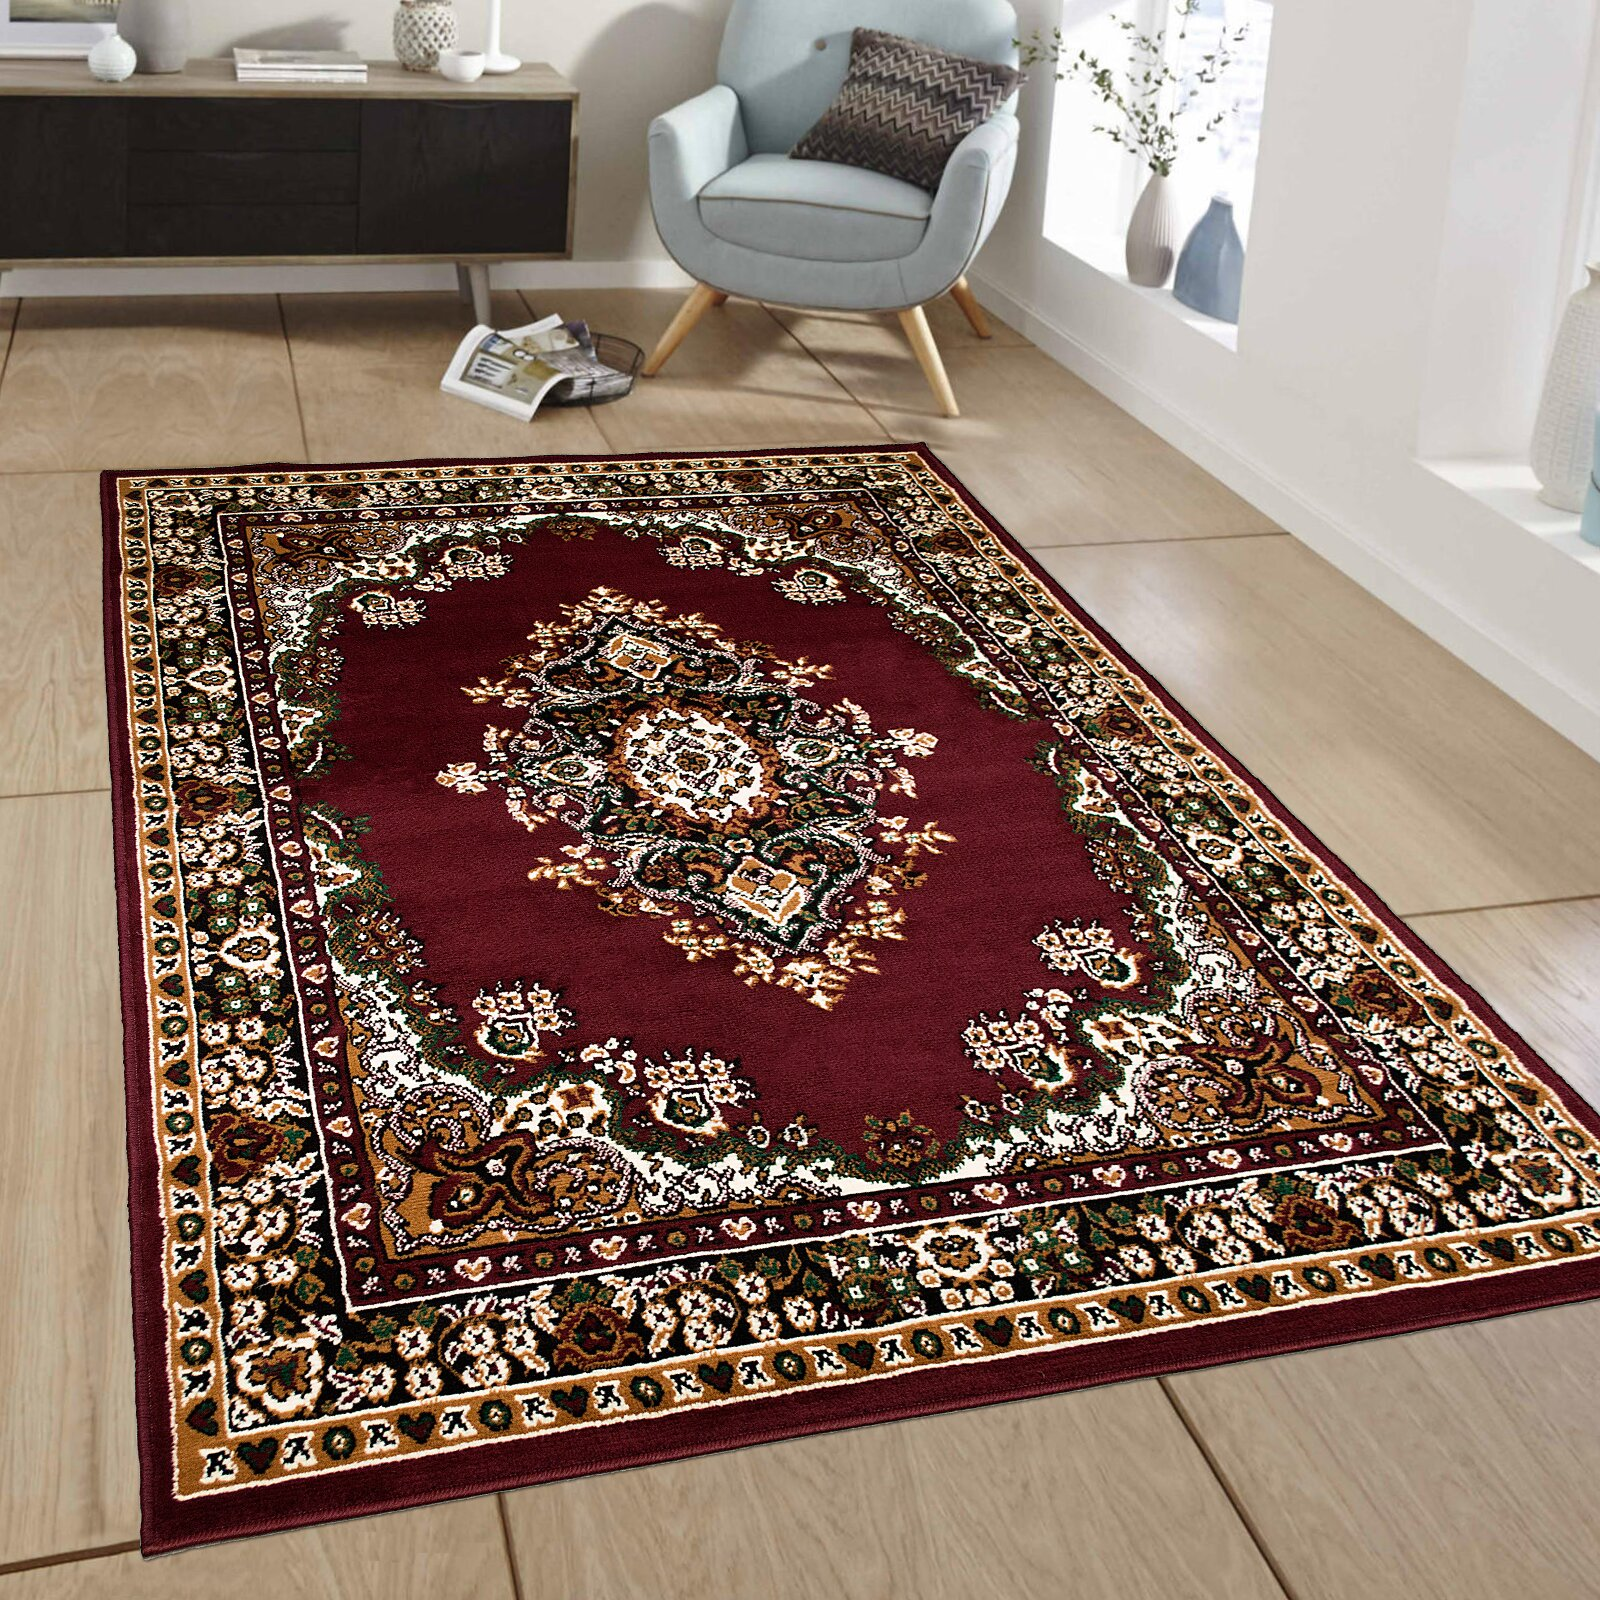 AllStar Rugs Burgundy Area Rug & Reviews